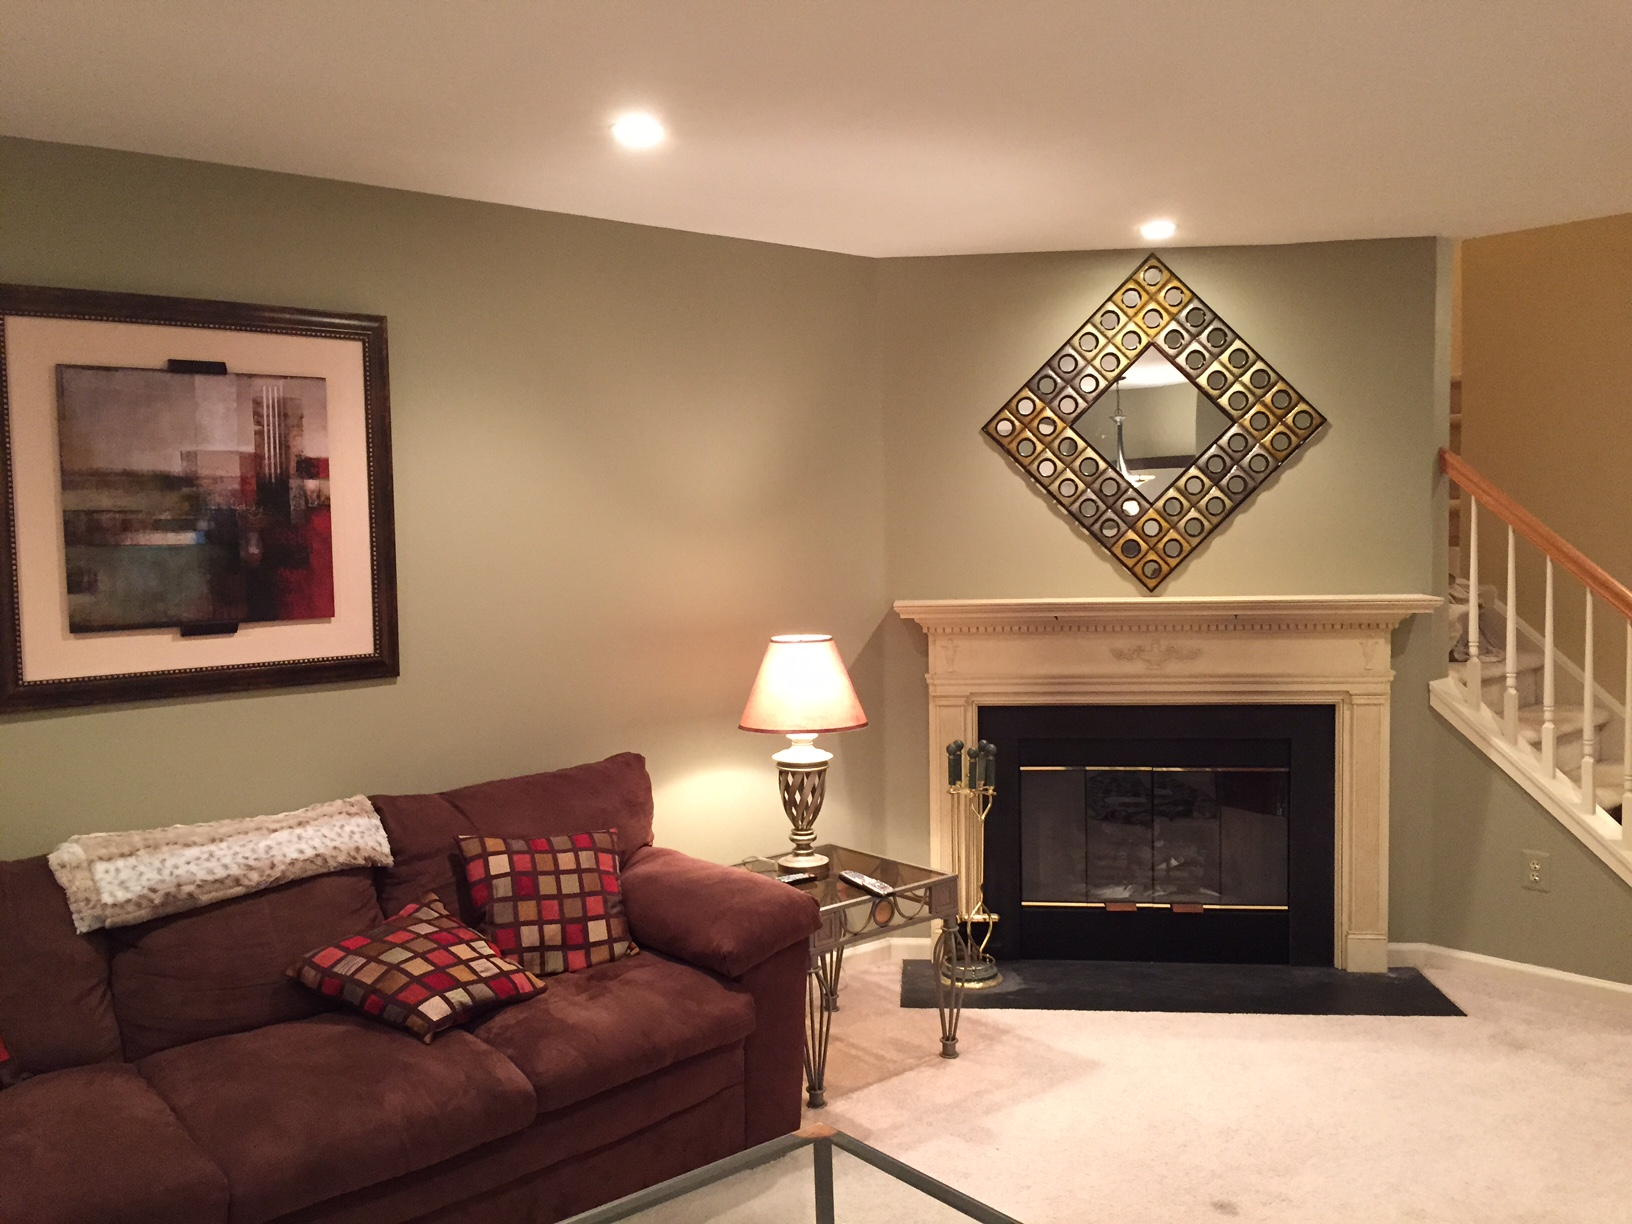 Family room interior painting